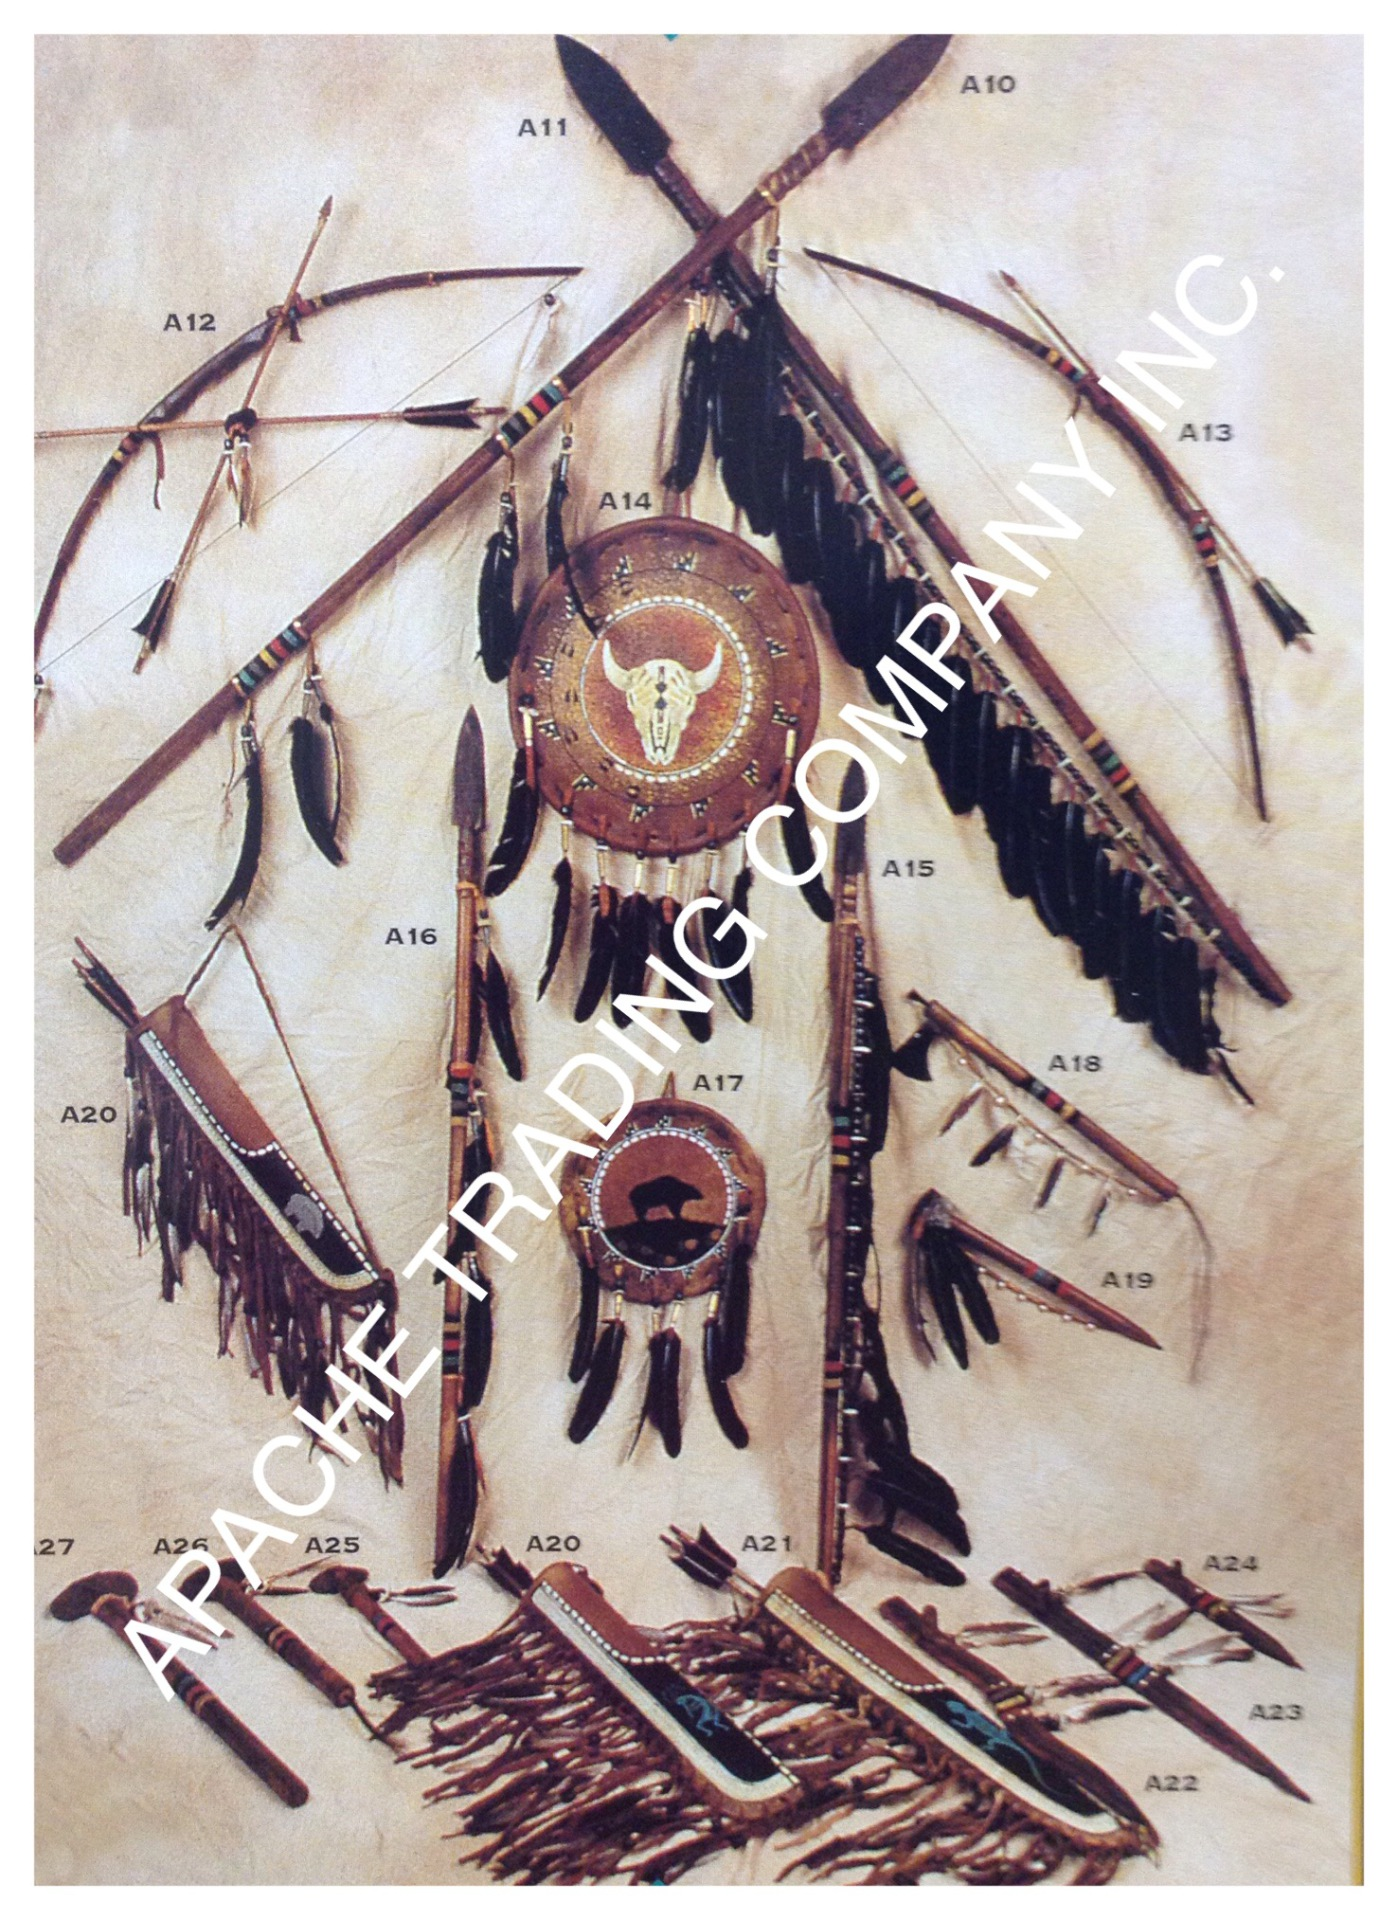 Native American Handcrafted Artifacts.